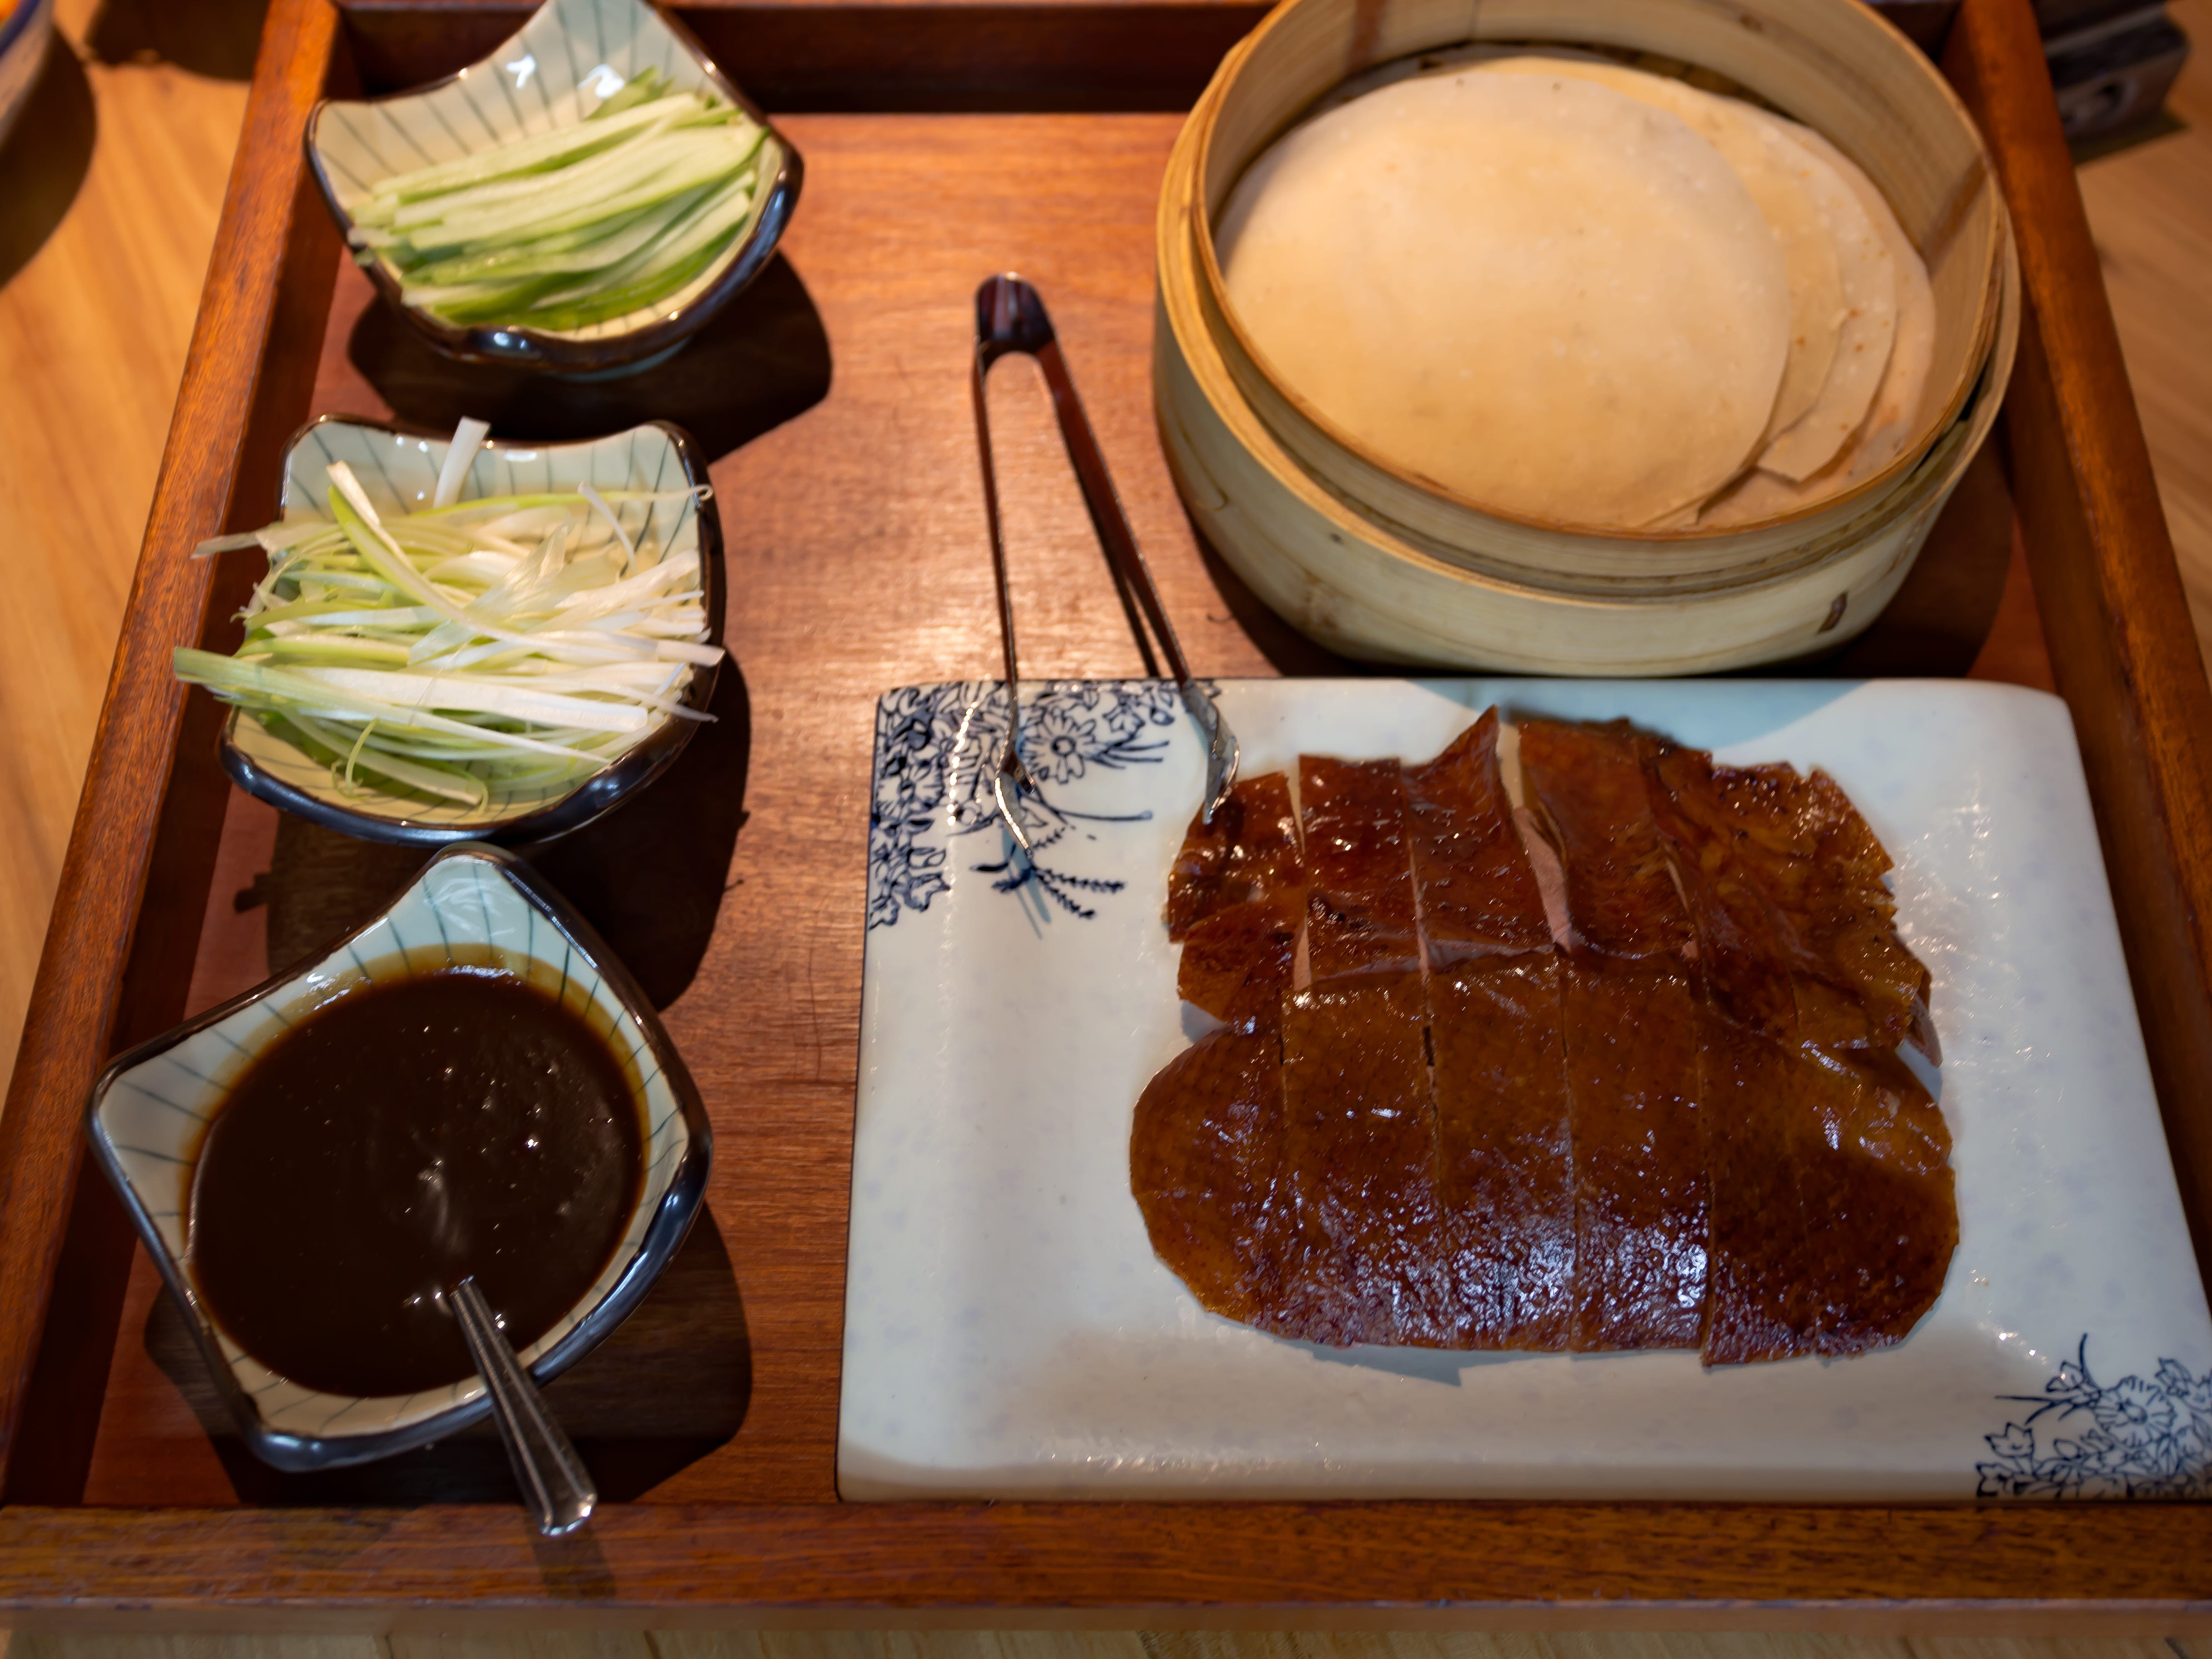 Peking Duck at O Mandarin Restaurant in Hartsdale.